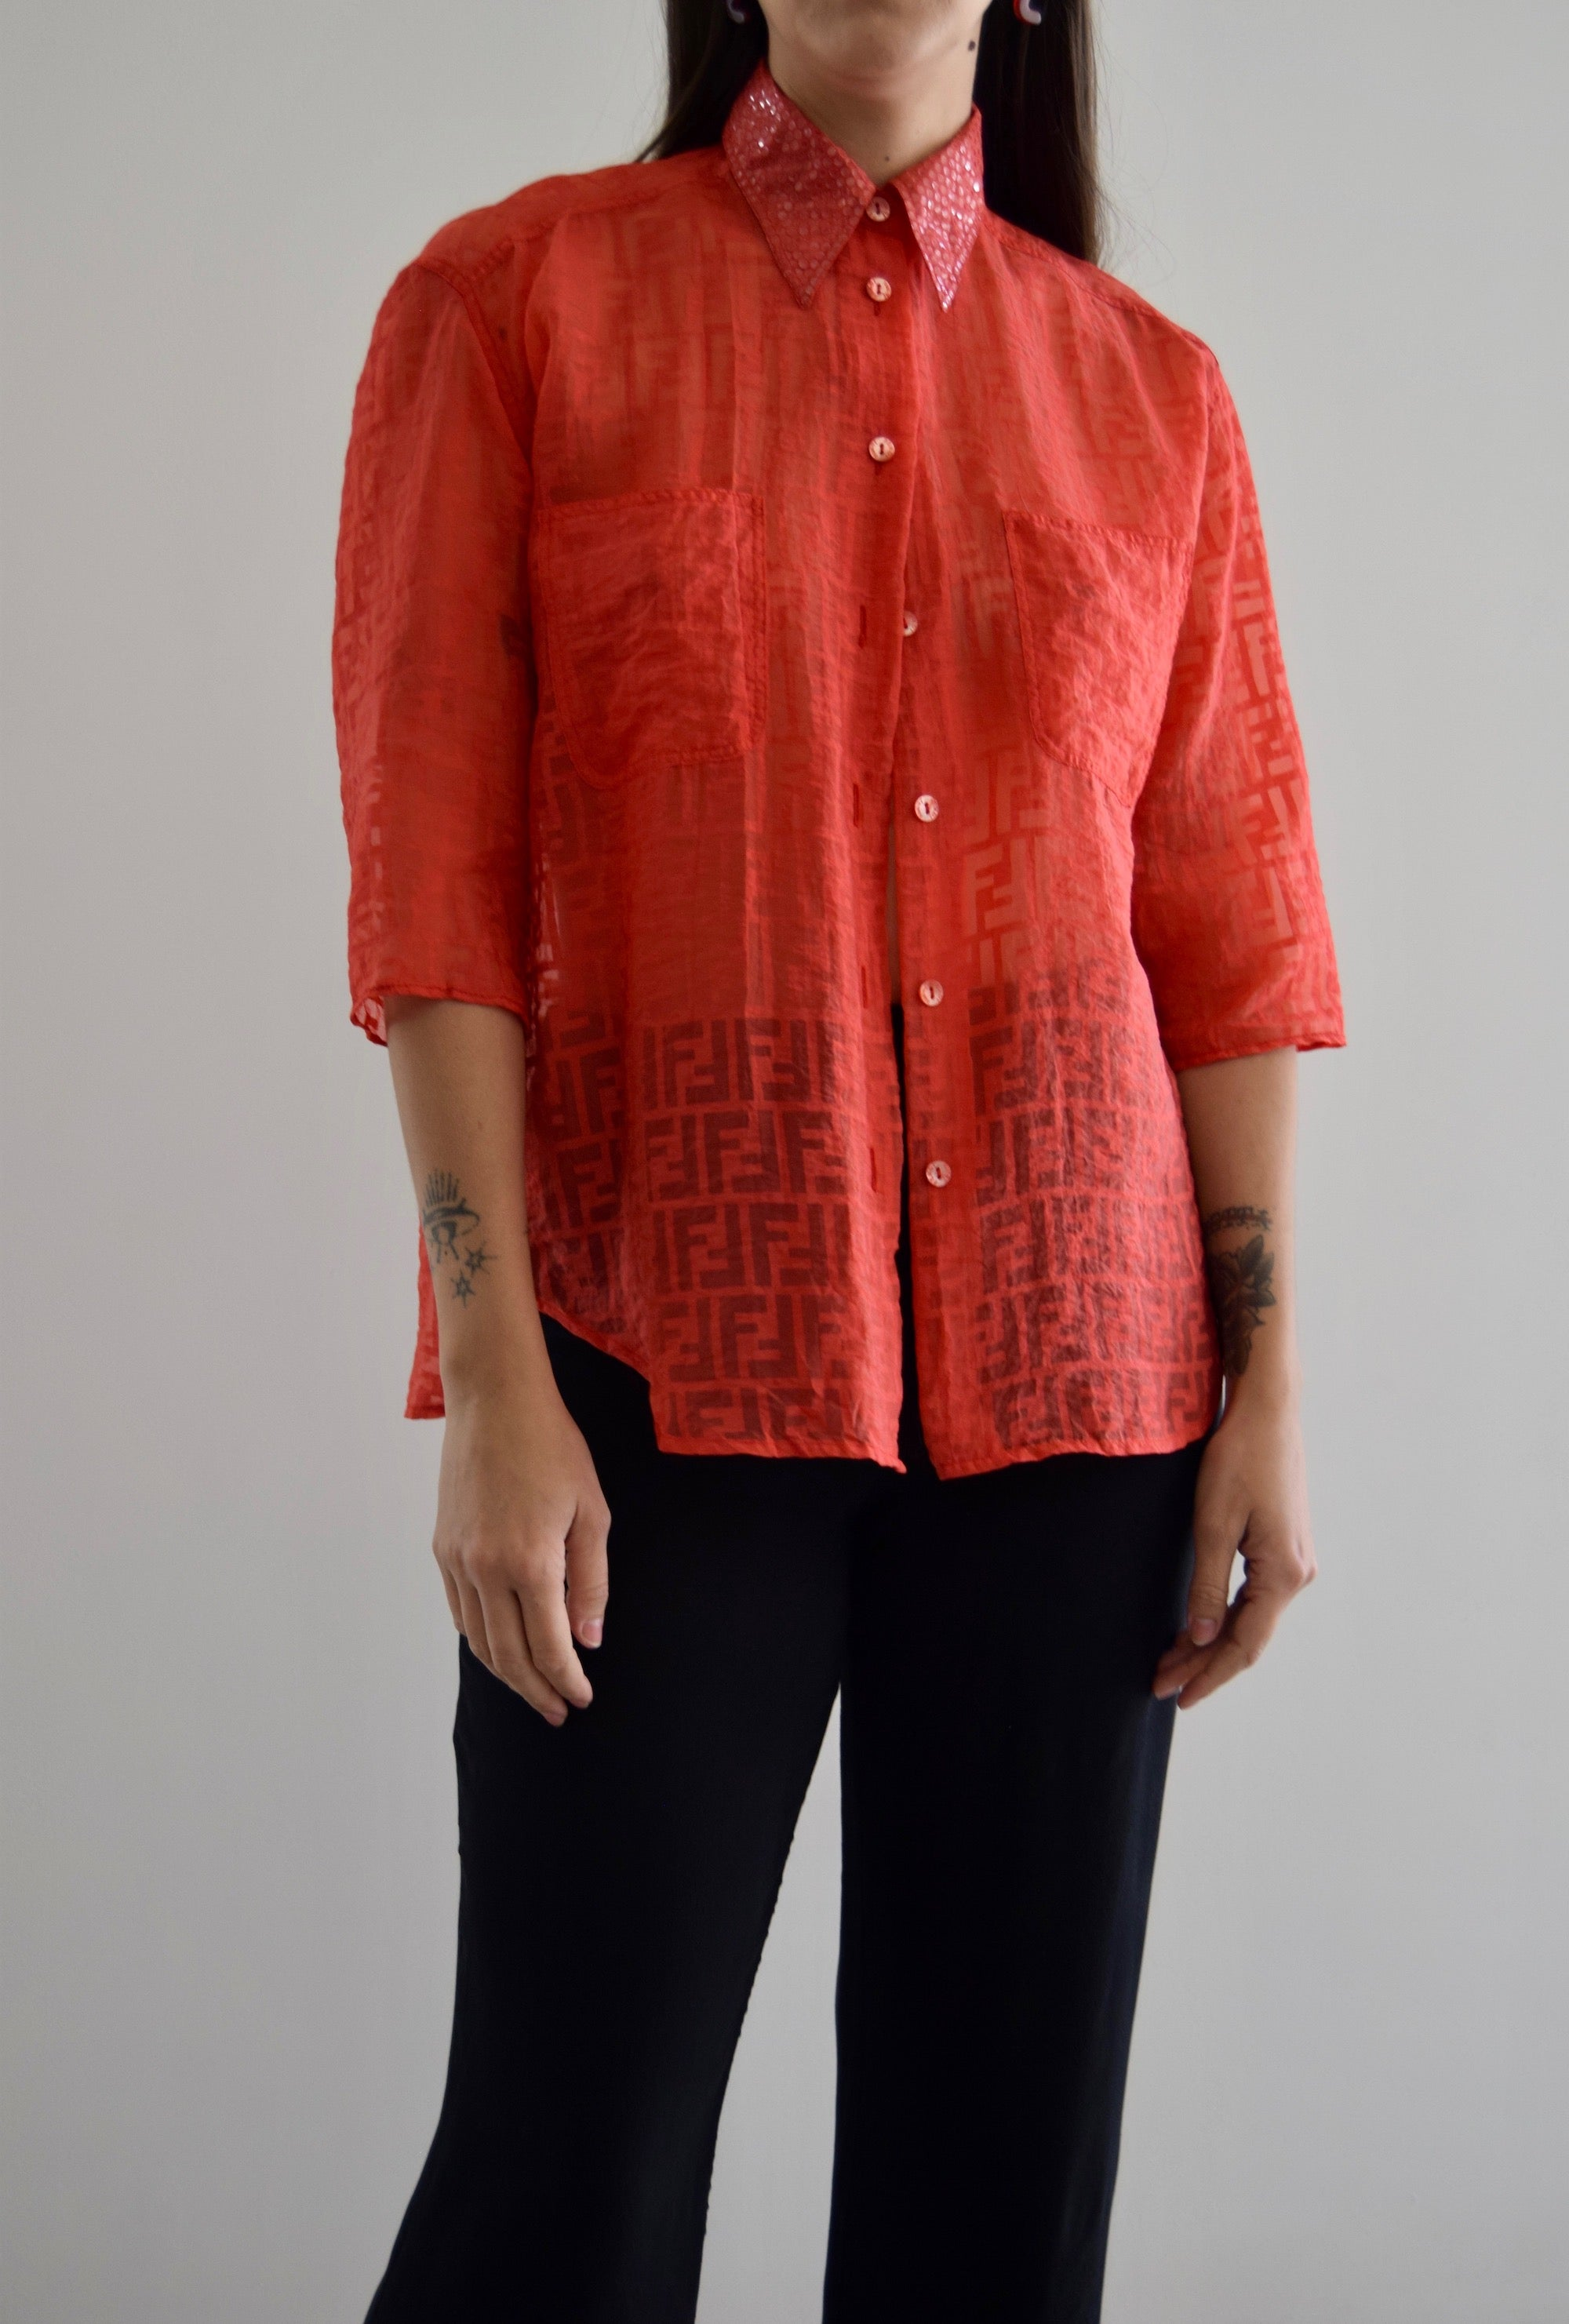 Fendi Zucca Print Electric Coral Sequin Blouse FREE SHIPPING